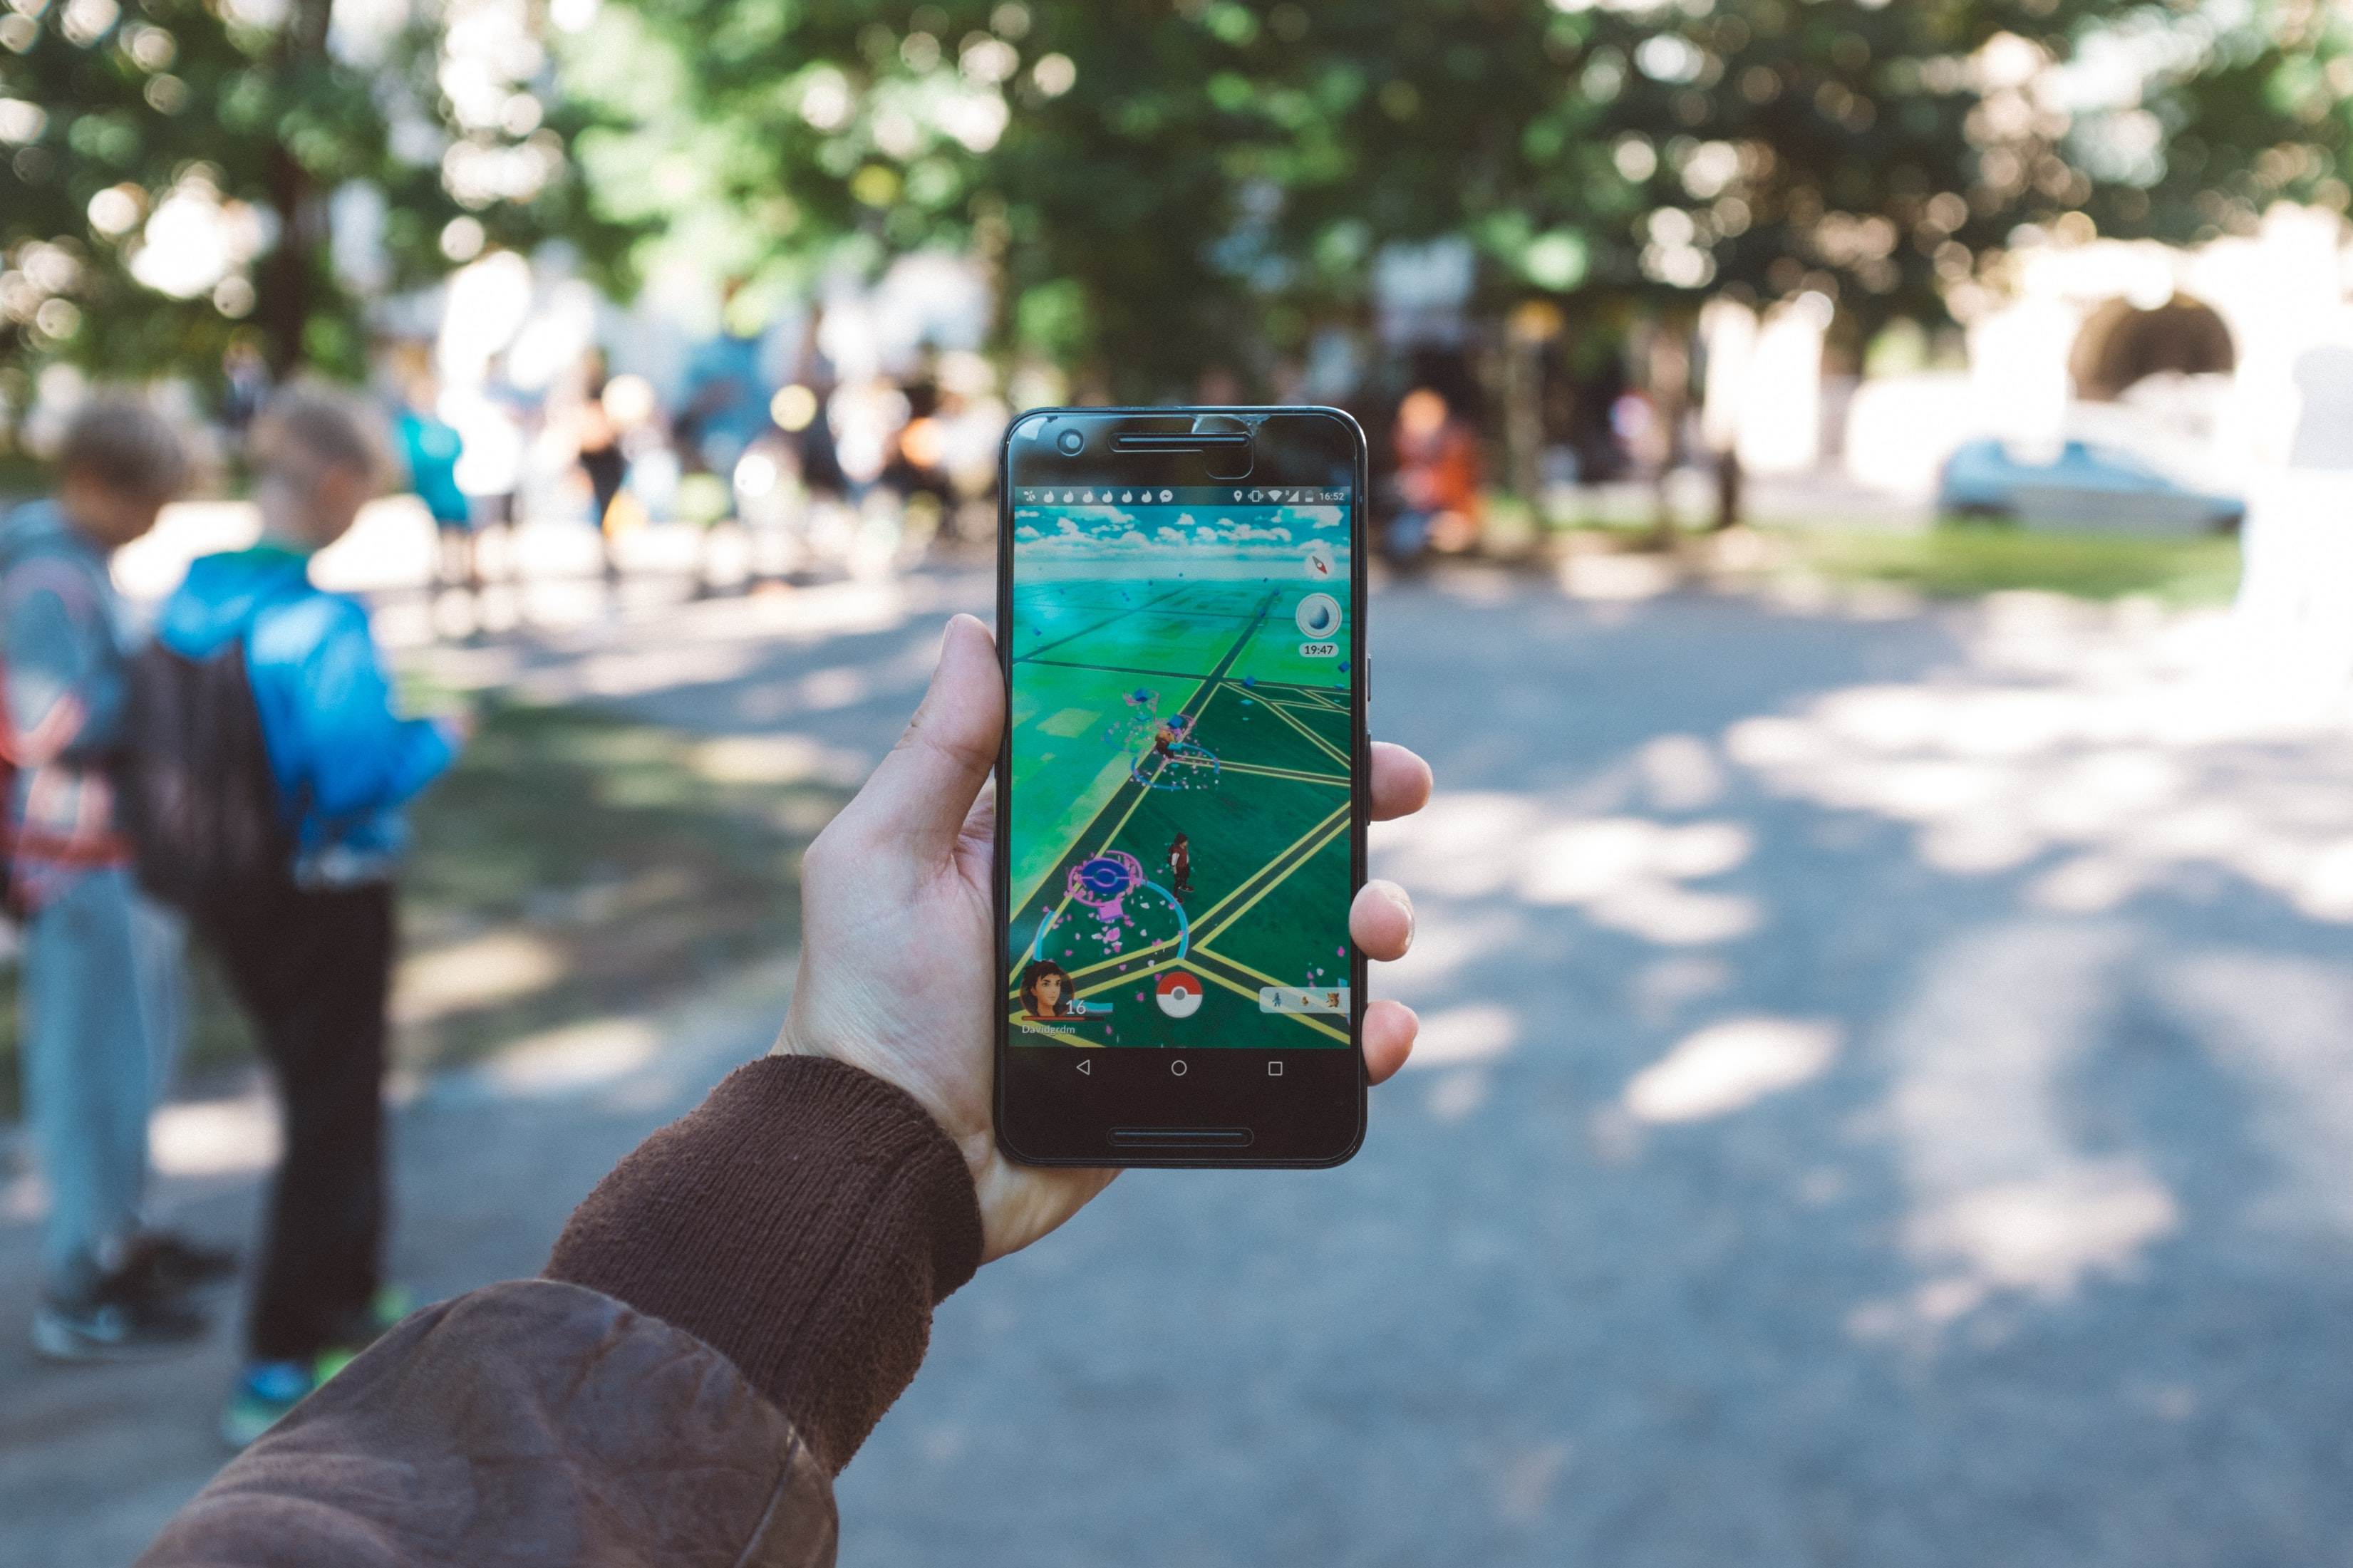 The mobile game, Pokemon GO, being played at a park